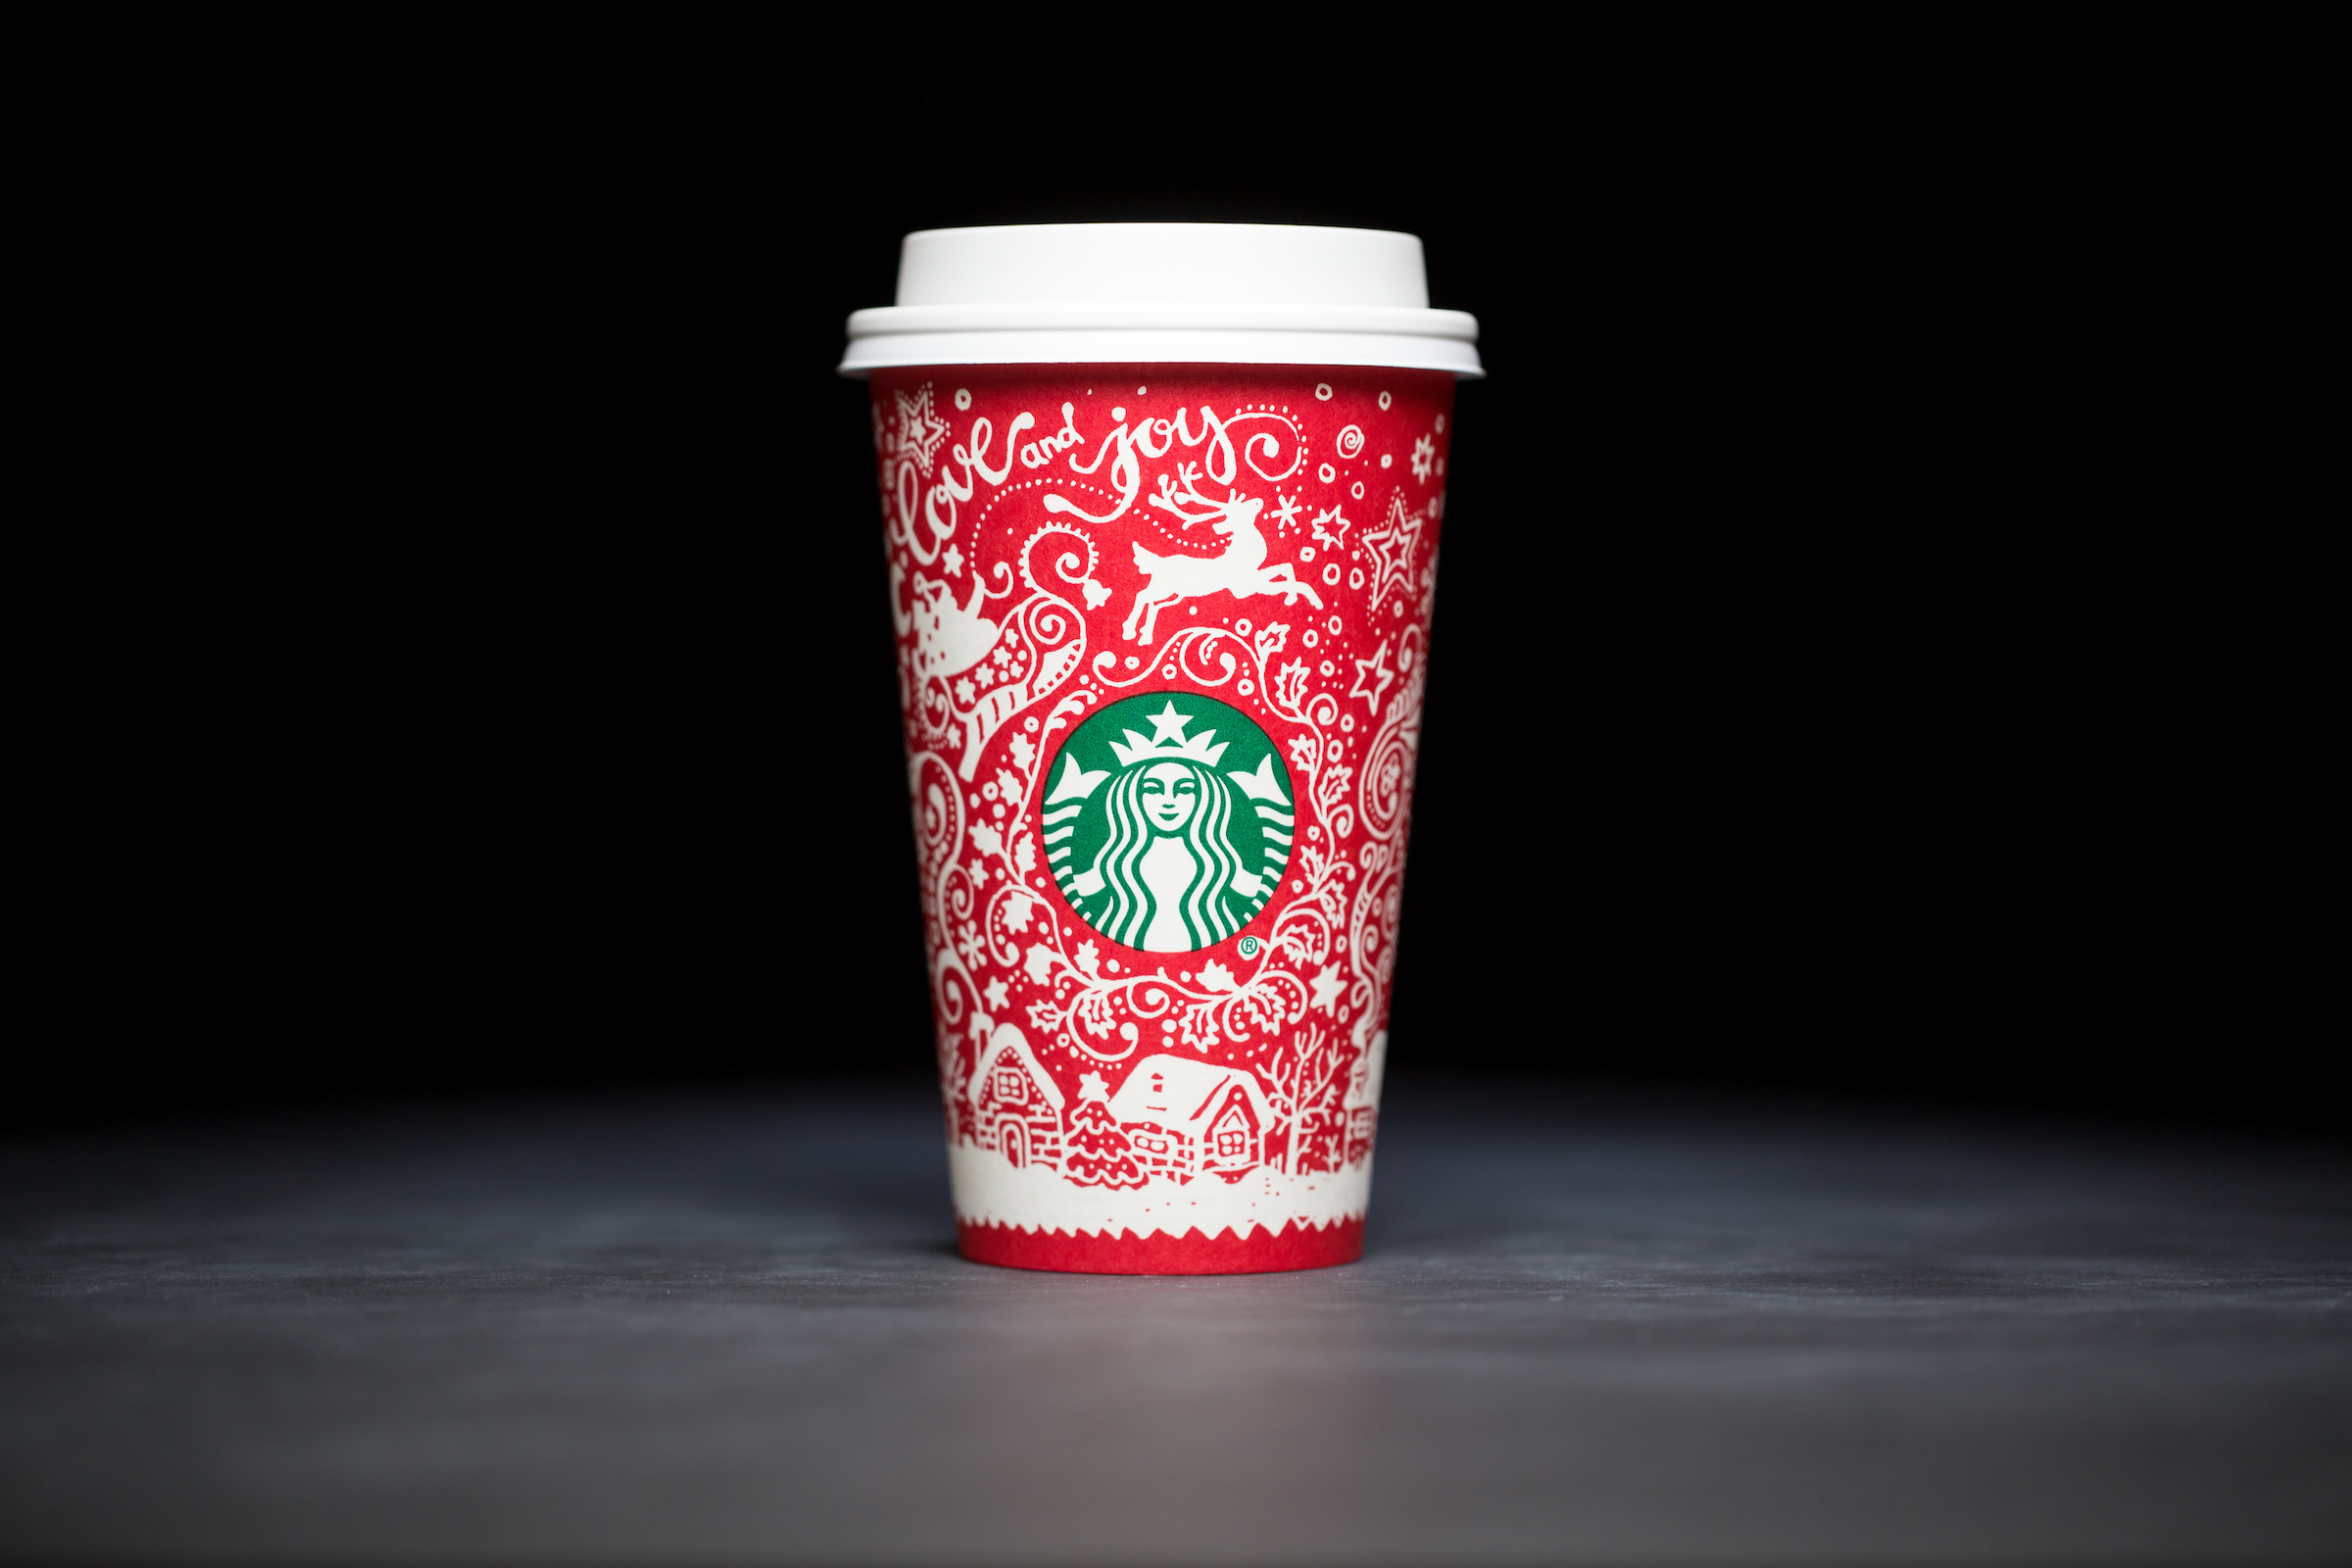 2016: For 20 years, Starbucks have released a range of holiday cup designs, most of them based around their world famous red cup. It's not easy to find the very first Starbucks holiday cups, which made their debut in stores in 1997. Few were saved, and electronic design files were lost in an earthquake in 2001. Even an Internet search is unyielding, with the cups having made their arrival long before the first selfie. But, we have them here! Click on for a photos of all 20 holidays cup designs. (Image: Joshua Trujillo/Cover Images)